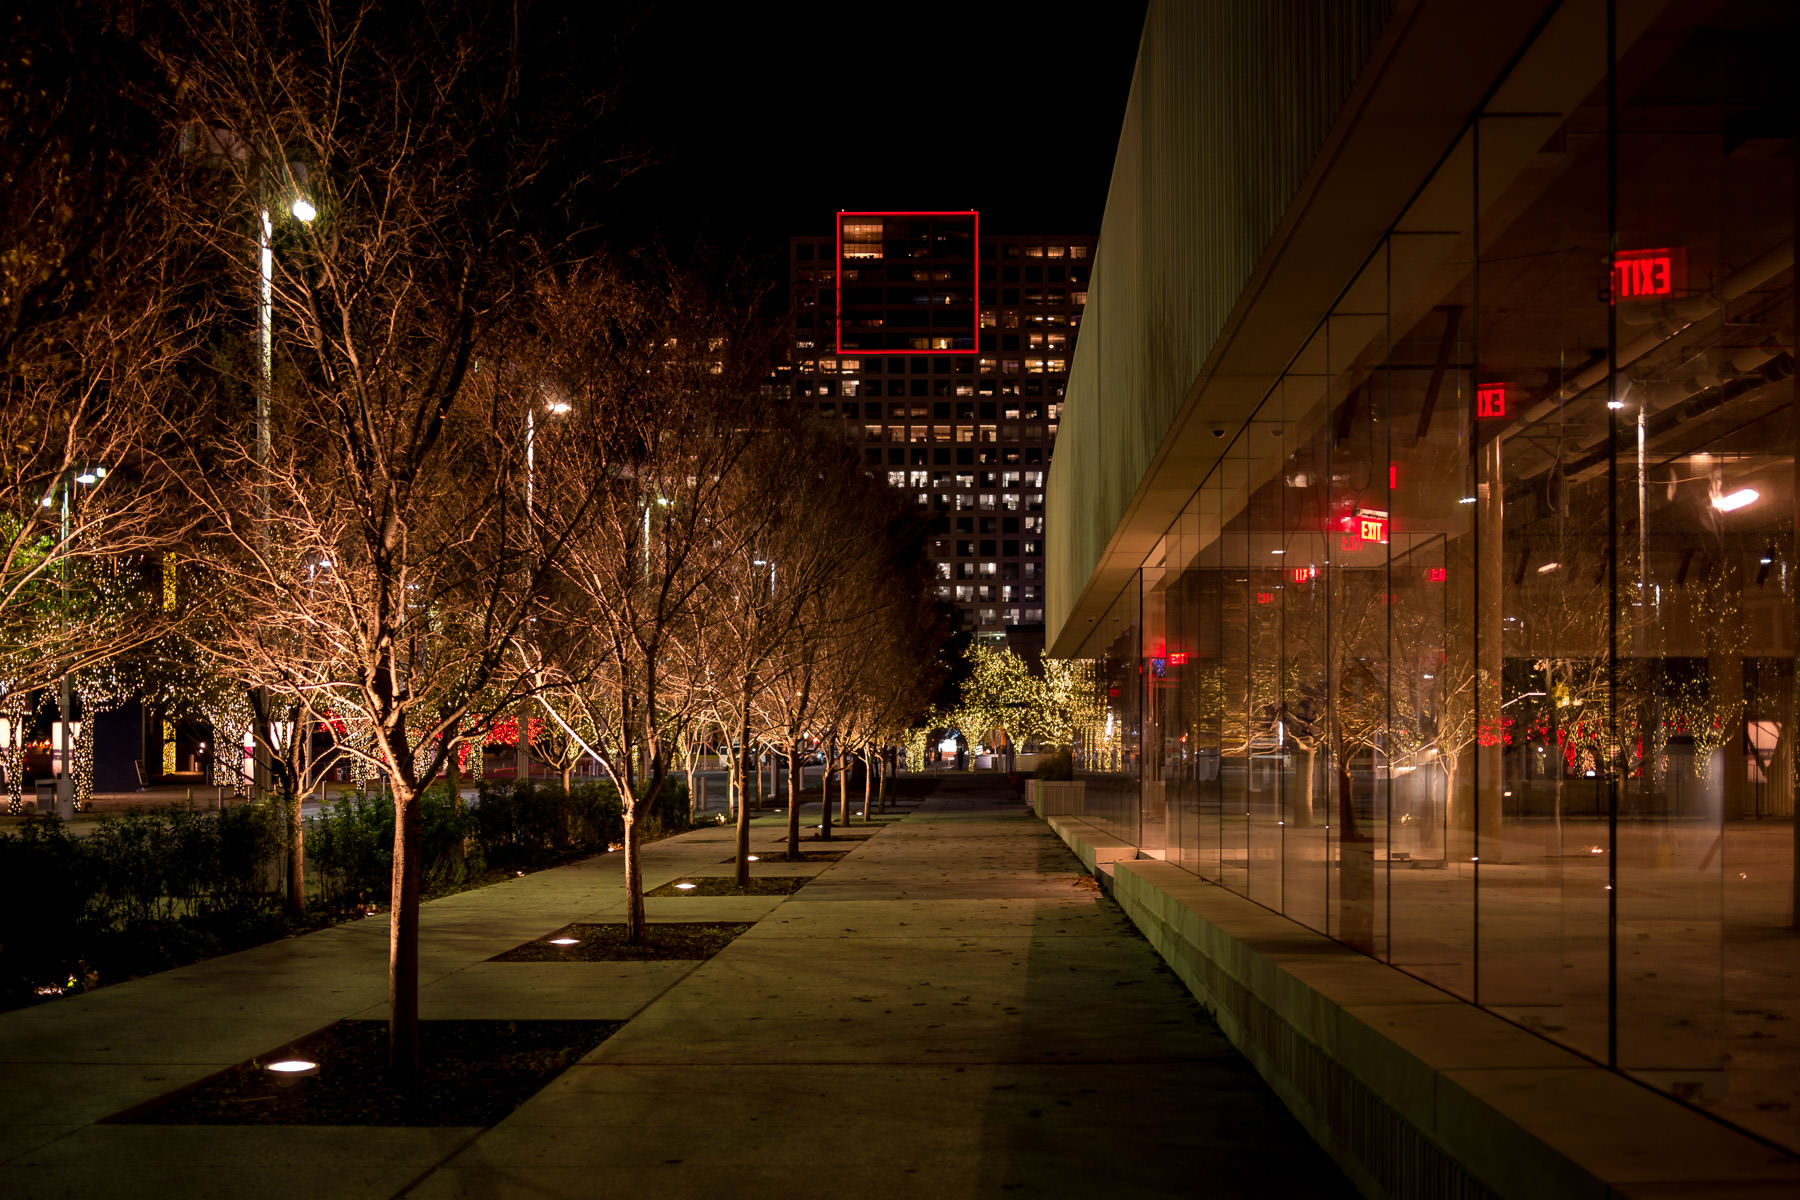 The Dallas Arts District's One Arts Plaza as seen from a sidewalk adjacent to the nearby HALL Arts.